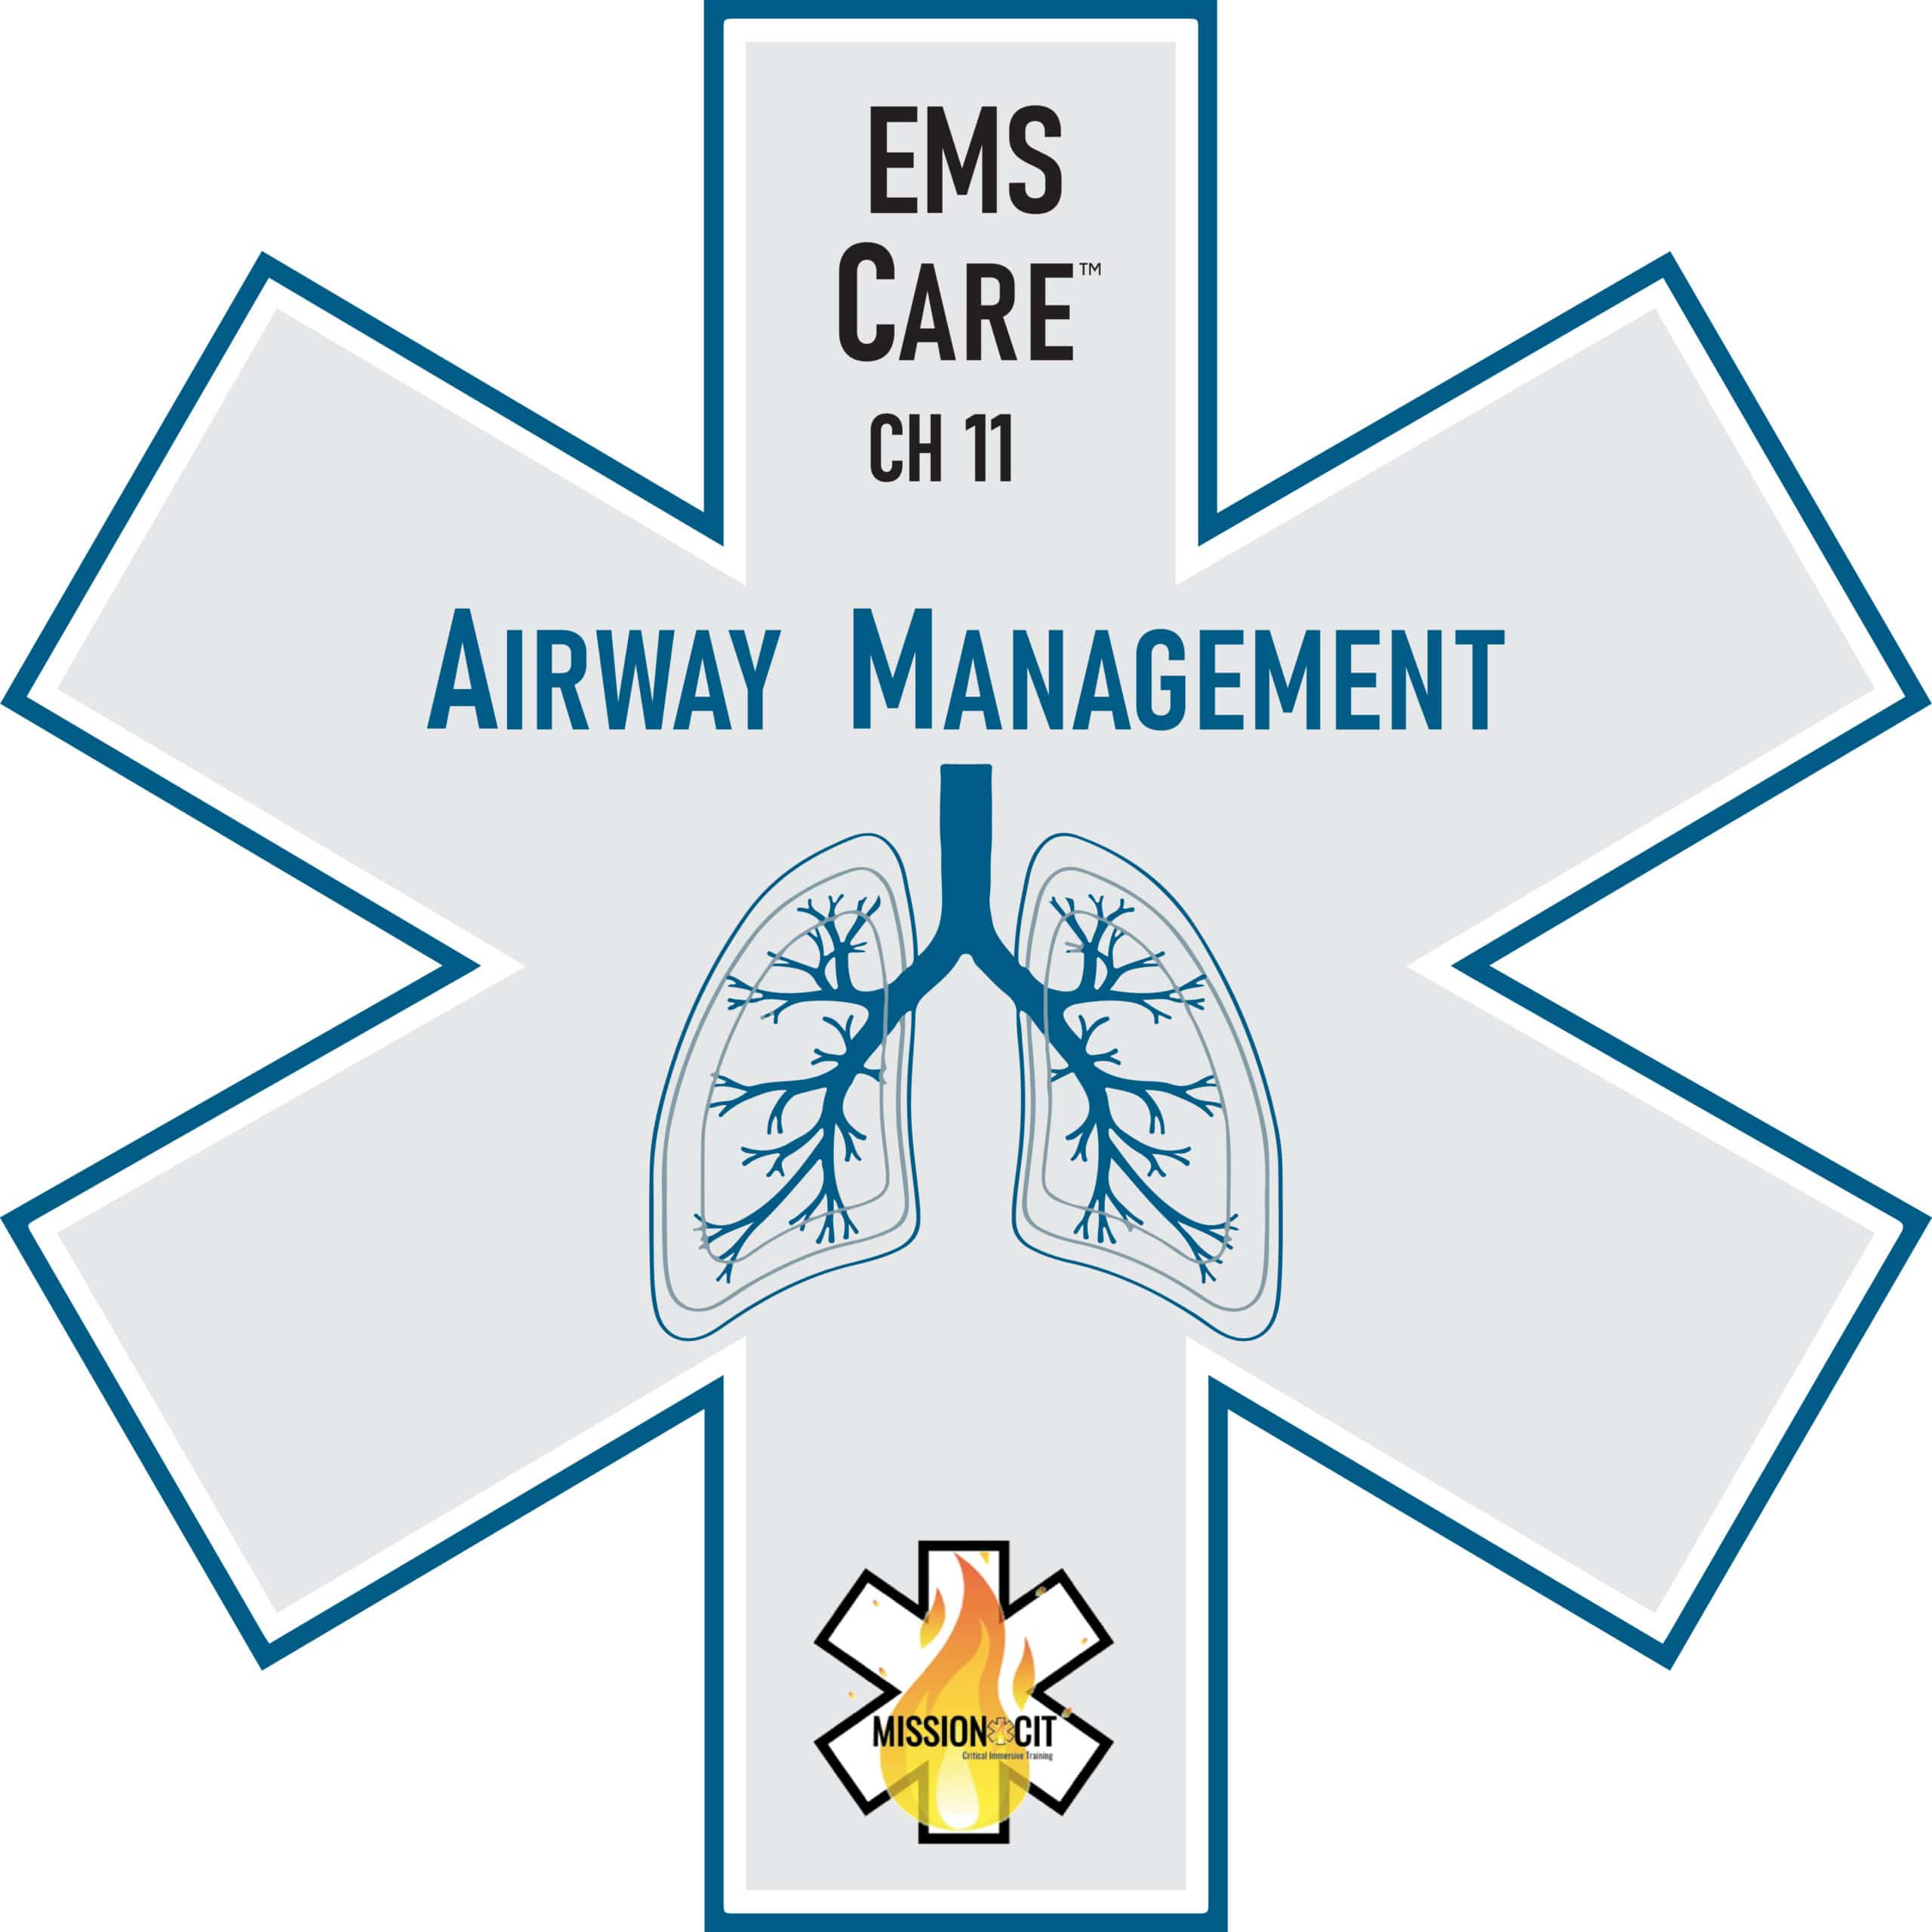 Basic Airway Management | EMT Airway Management | Lessons include Airway Physiology and Pathophysiology | Use of advanced airway adjuncts